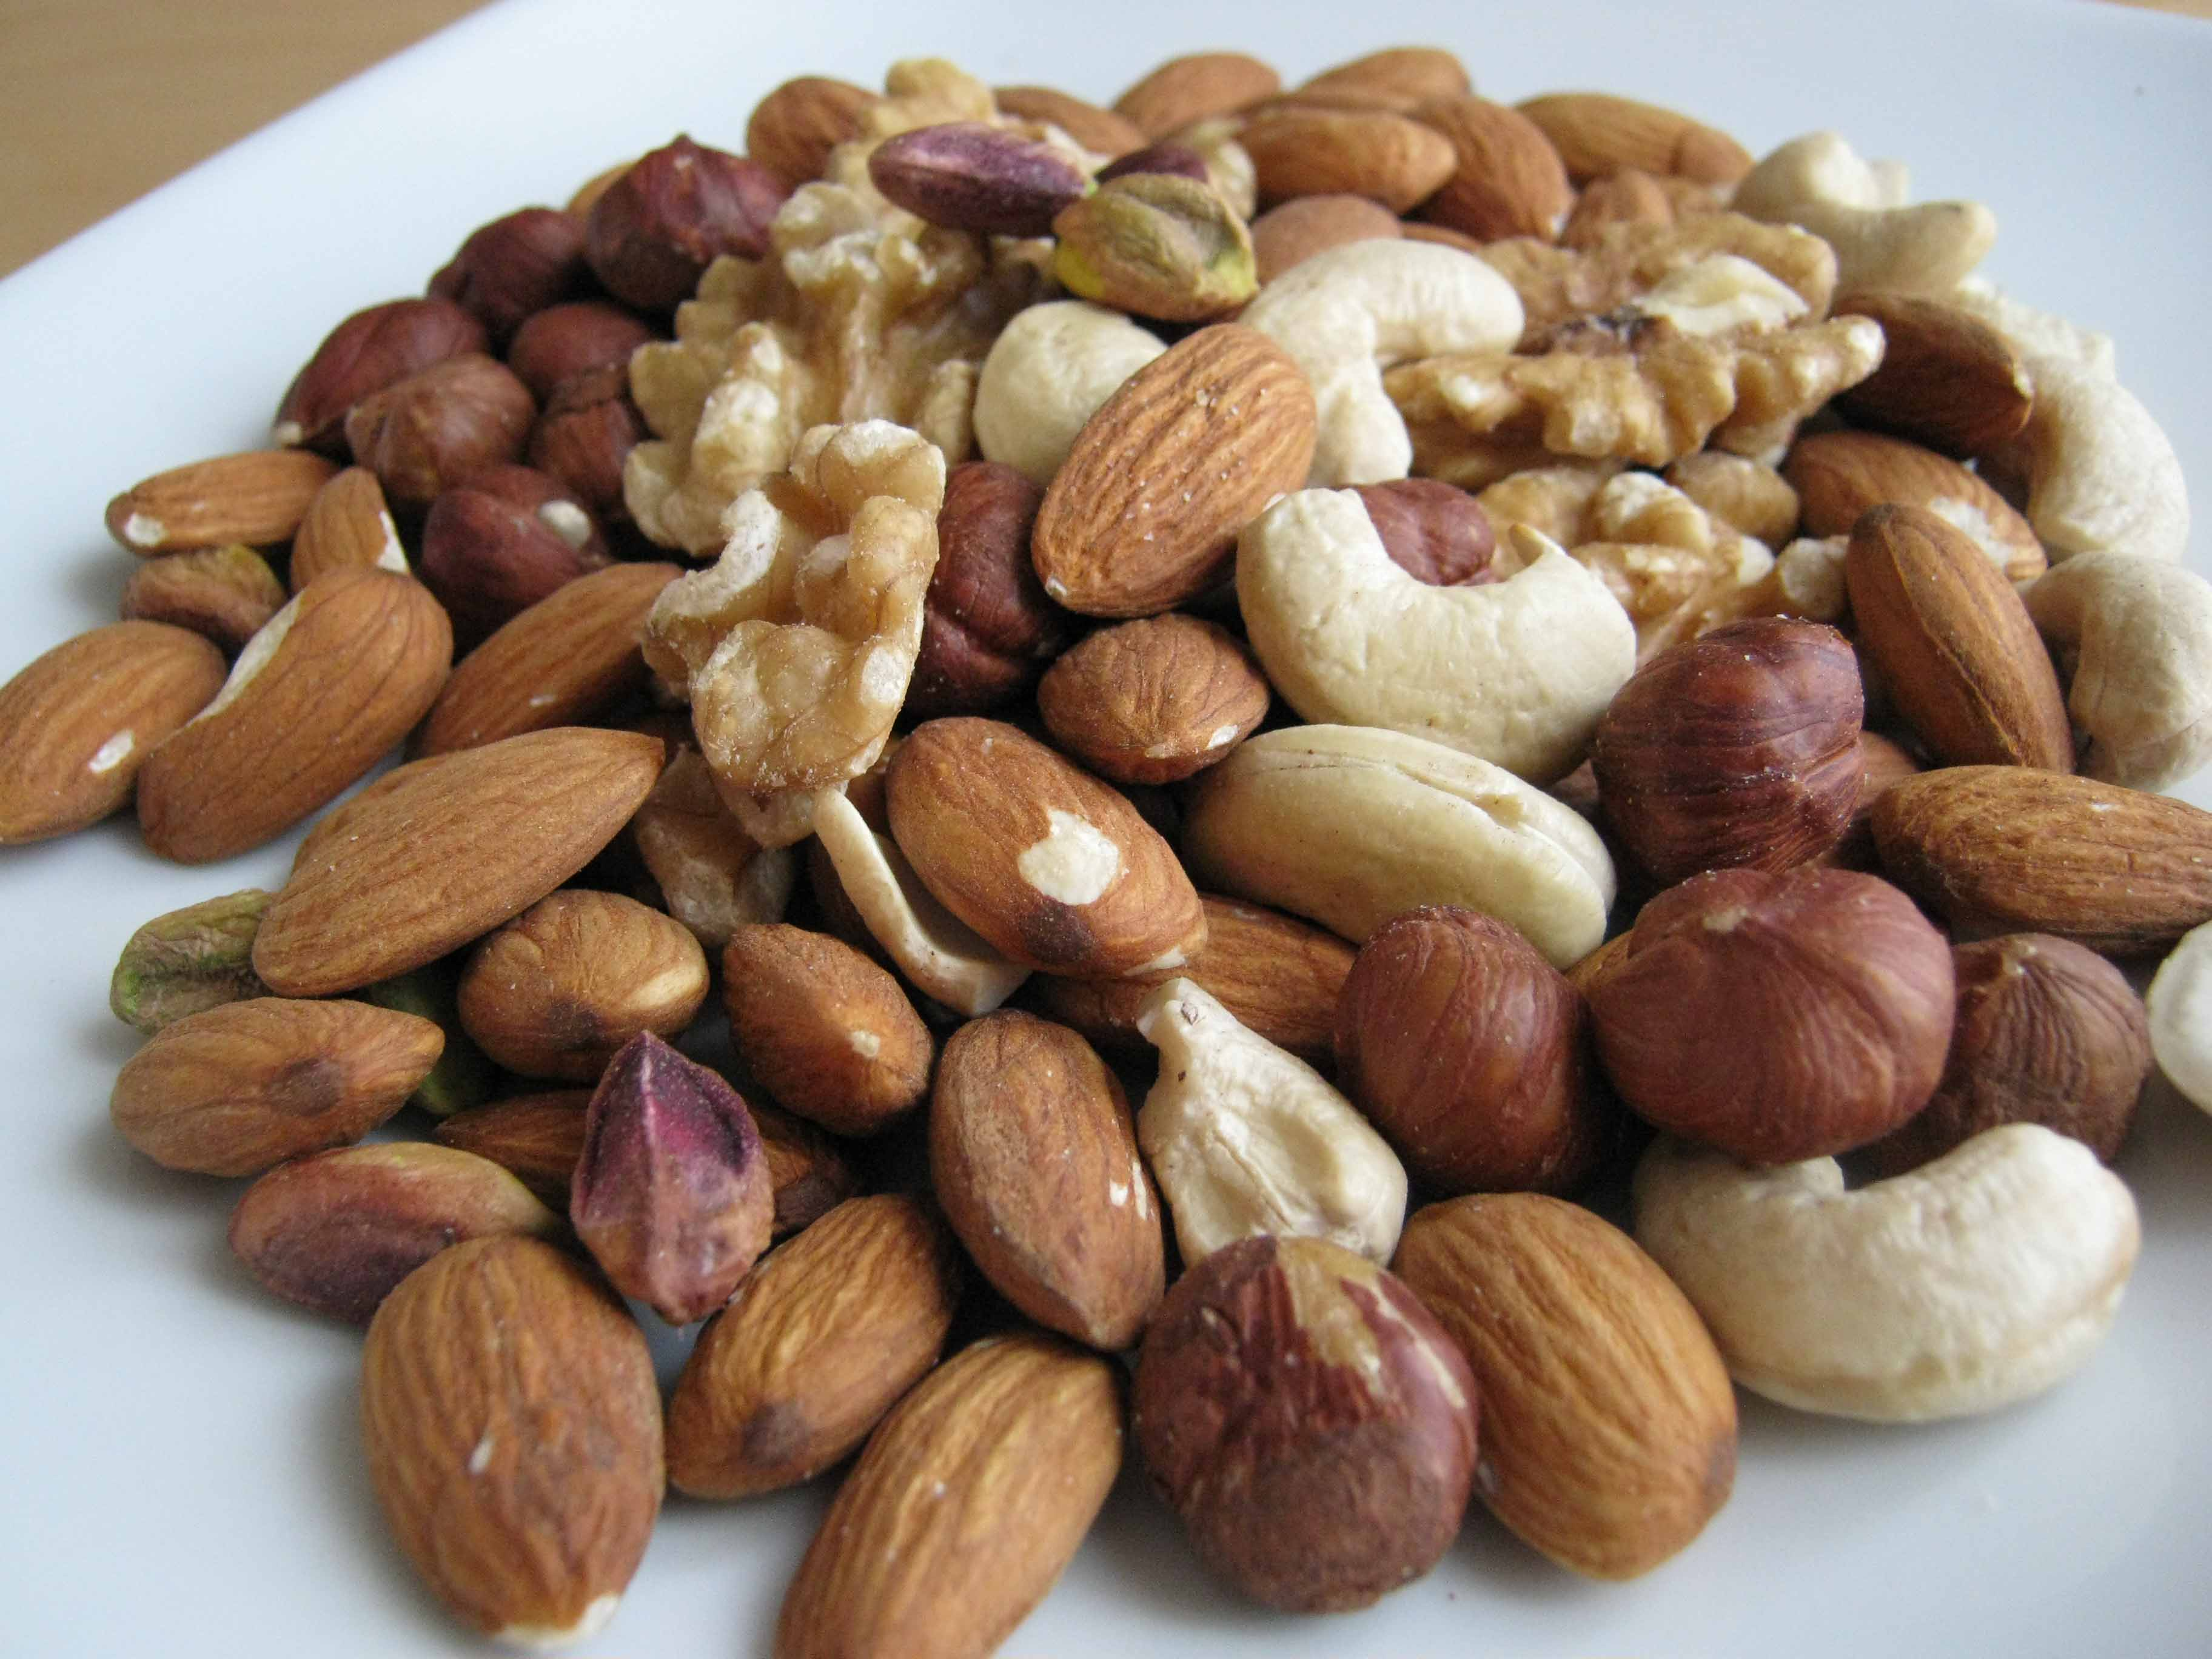 How to eat walnuts in fact The harm and benefits